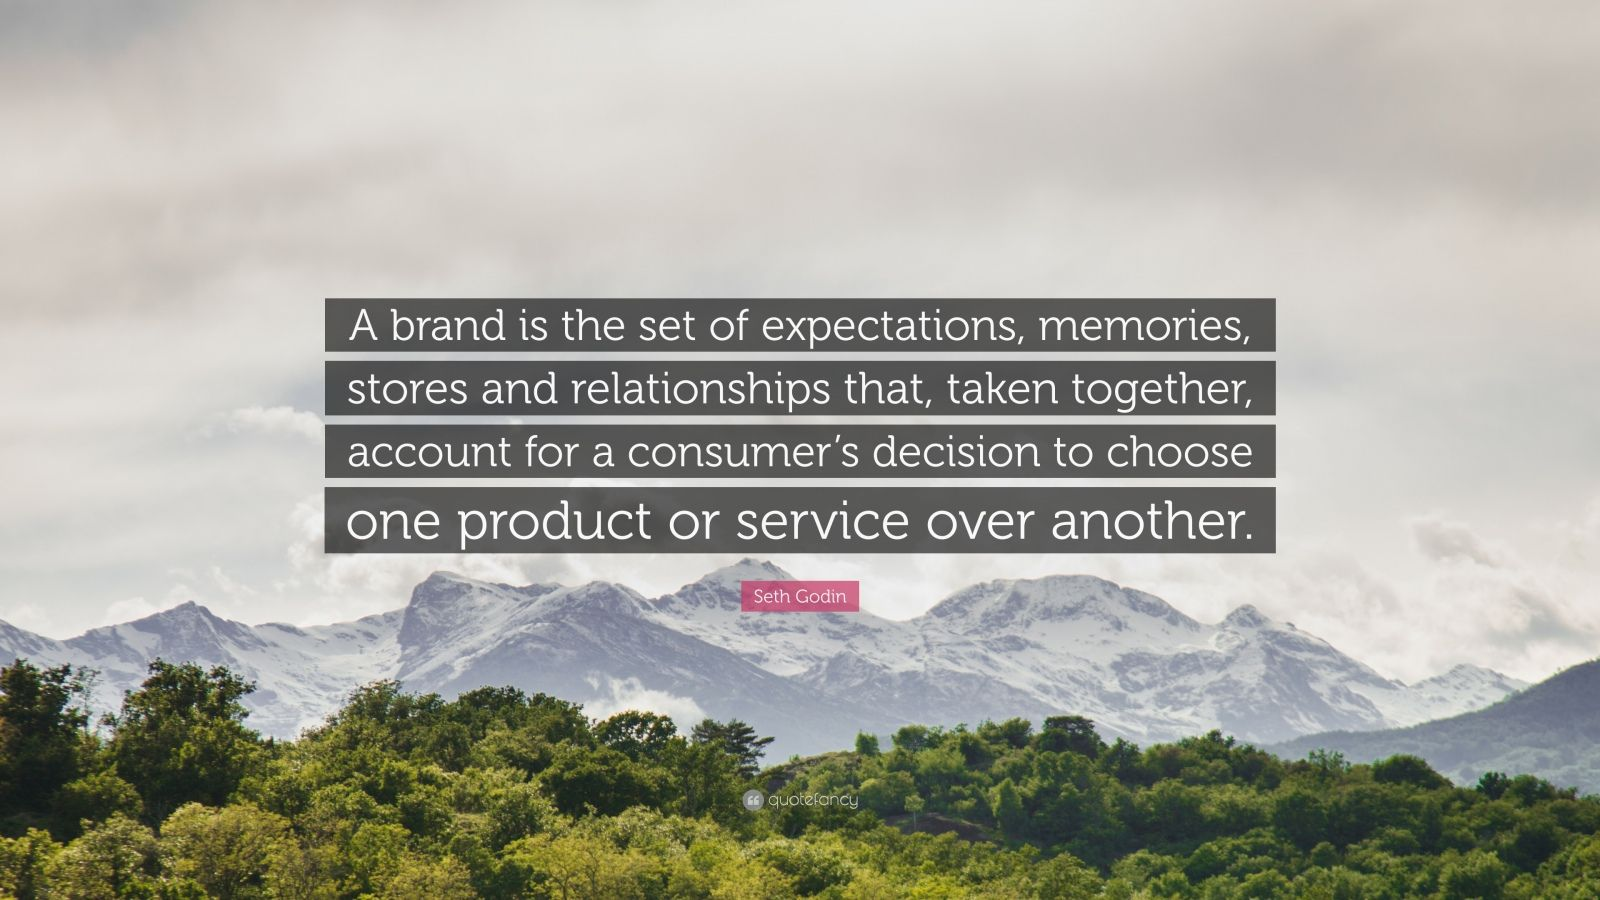 """Seth Godin Quote: """"A brand is the set of expectations, memories, stores and relationships that, taken together, account for a consumer's decision to choose one product or service over another."""""""